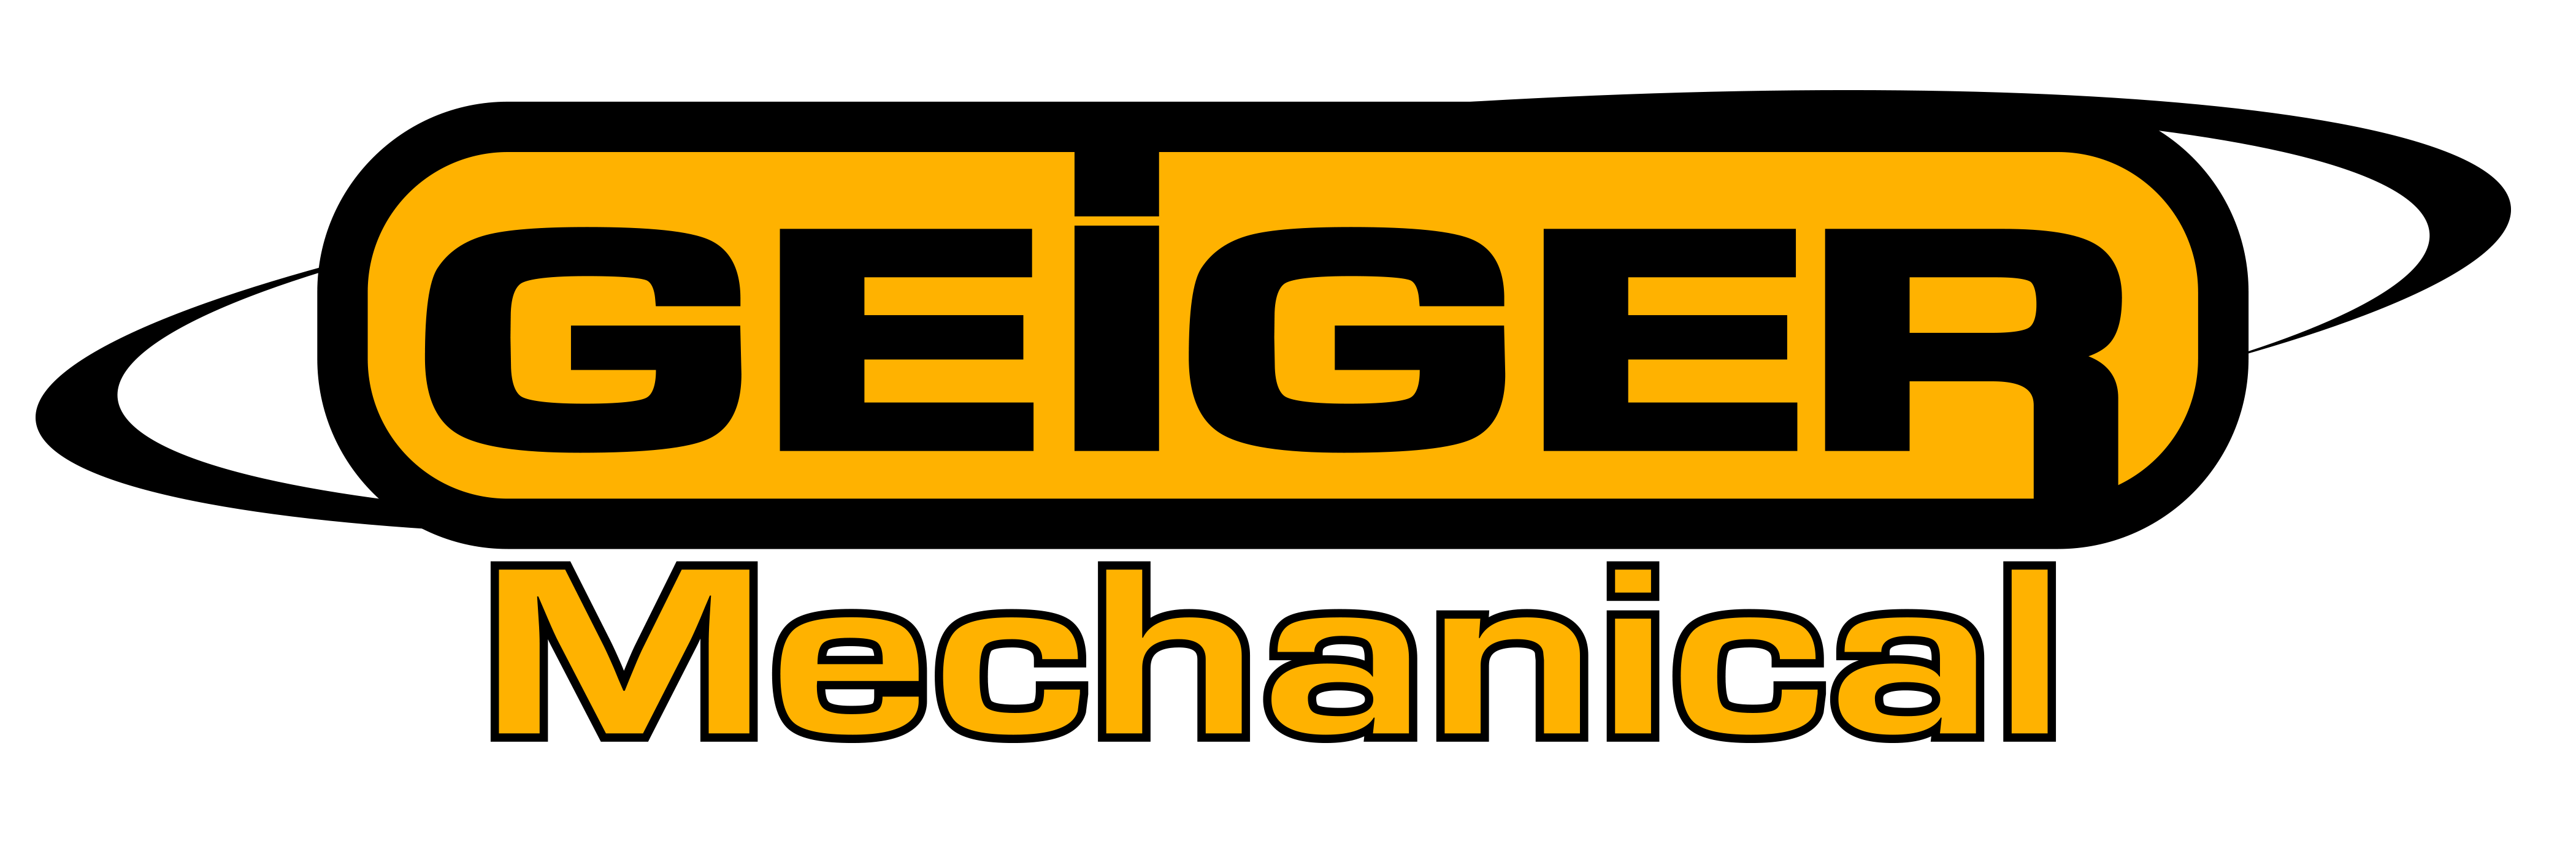 Geiger Mechanical Logo